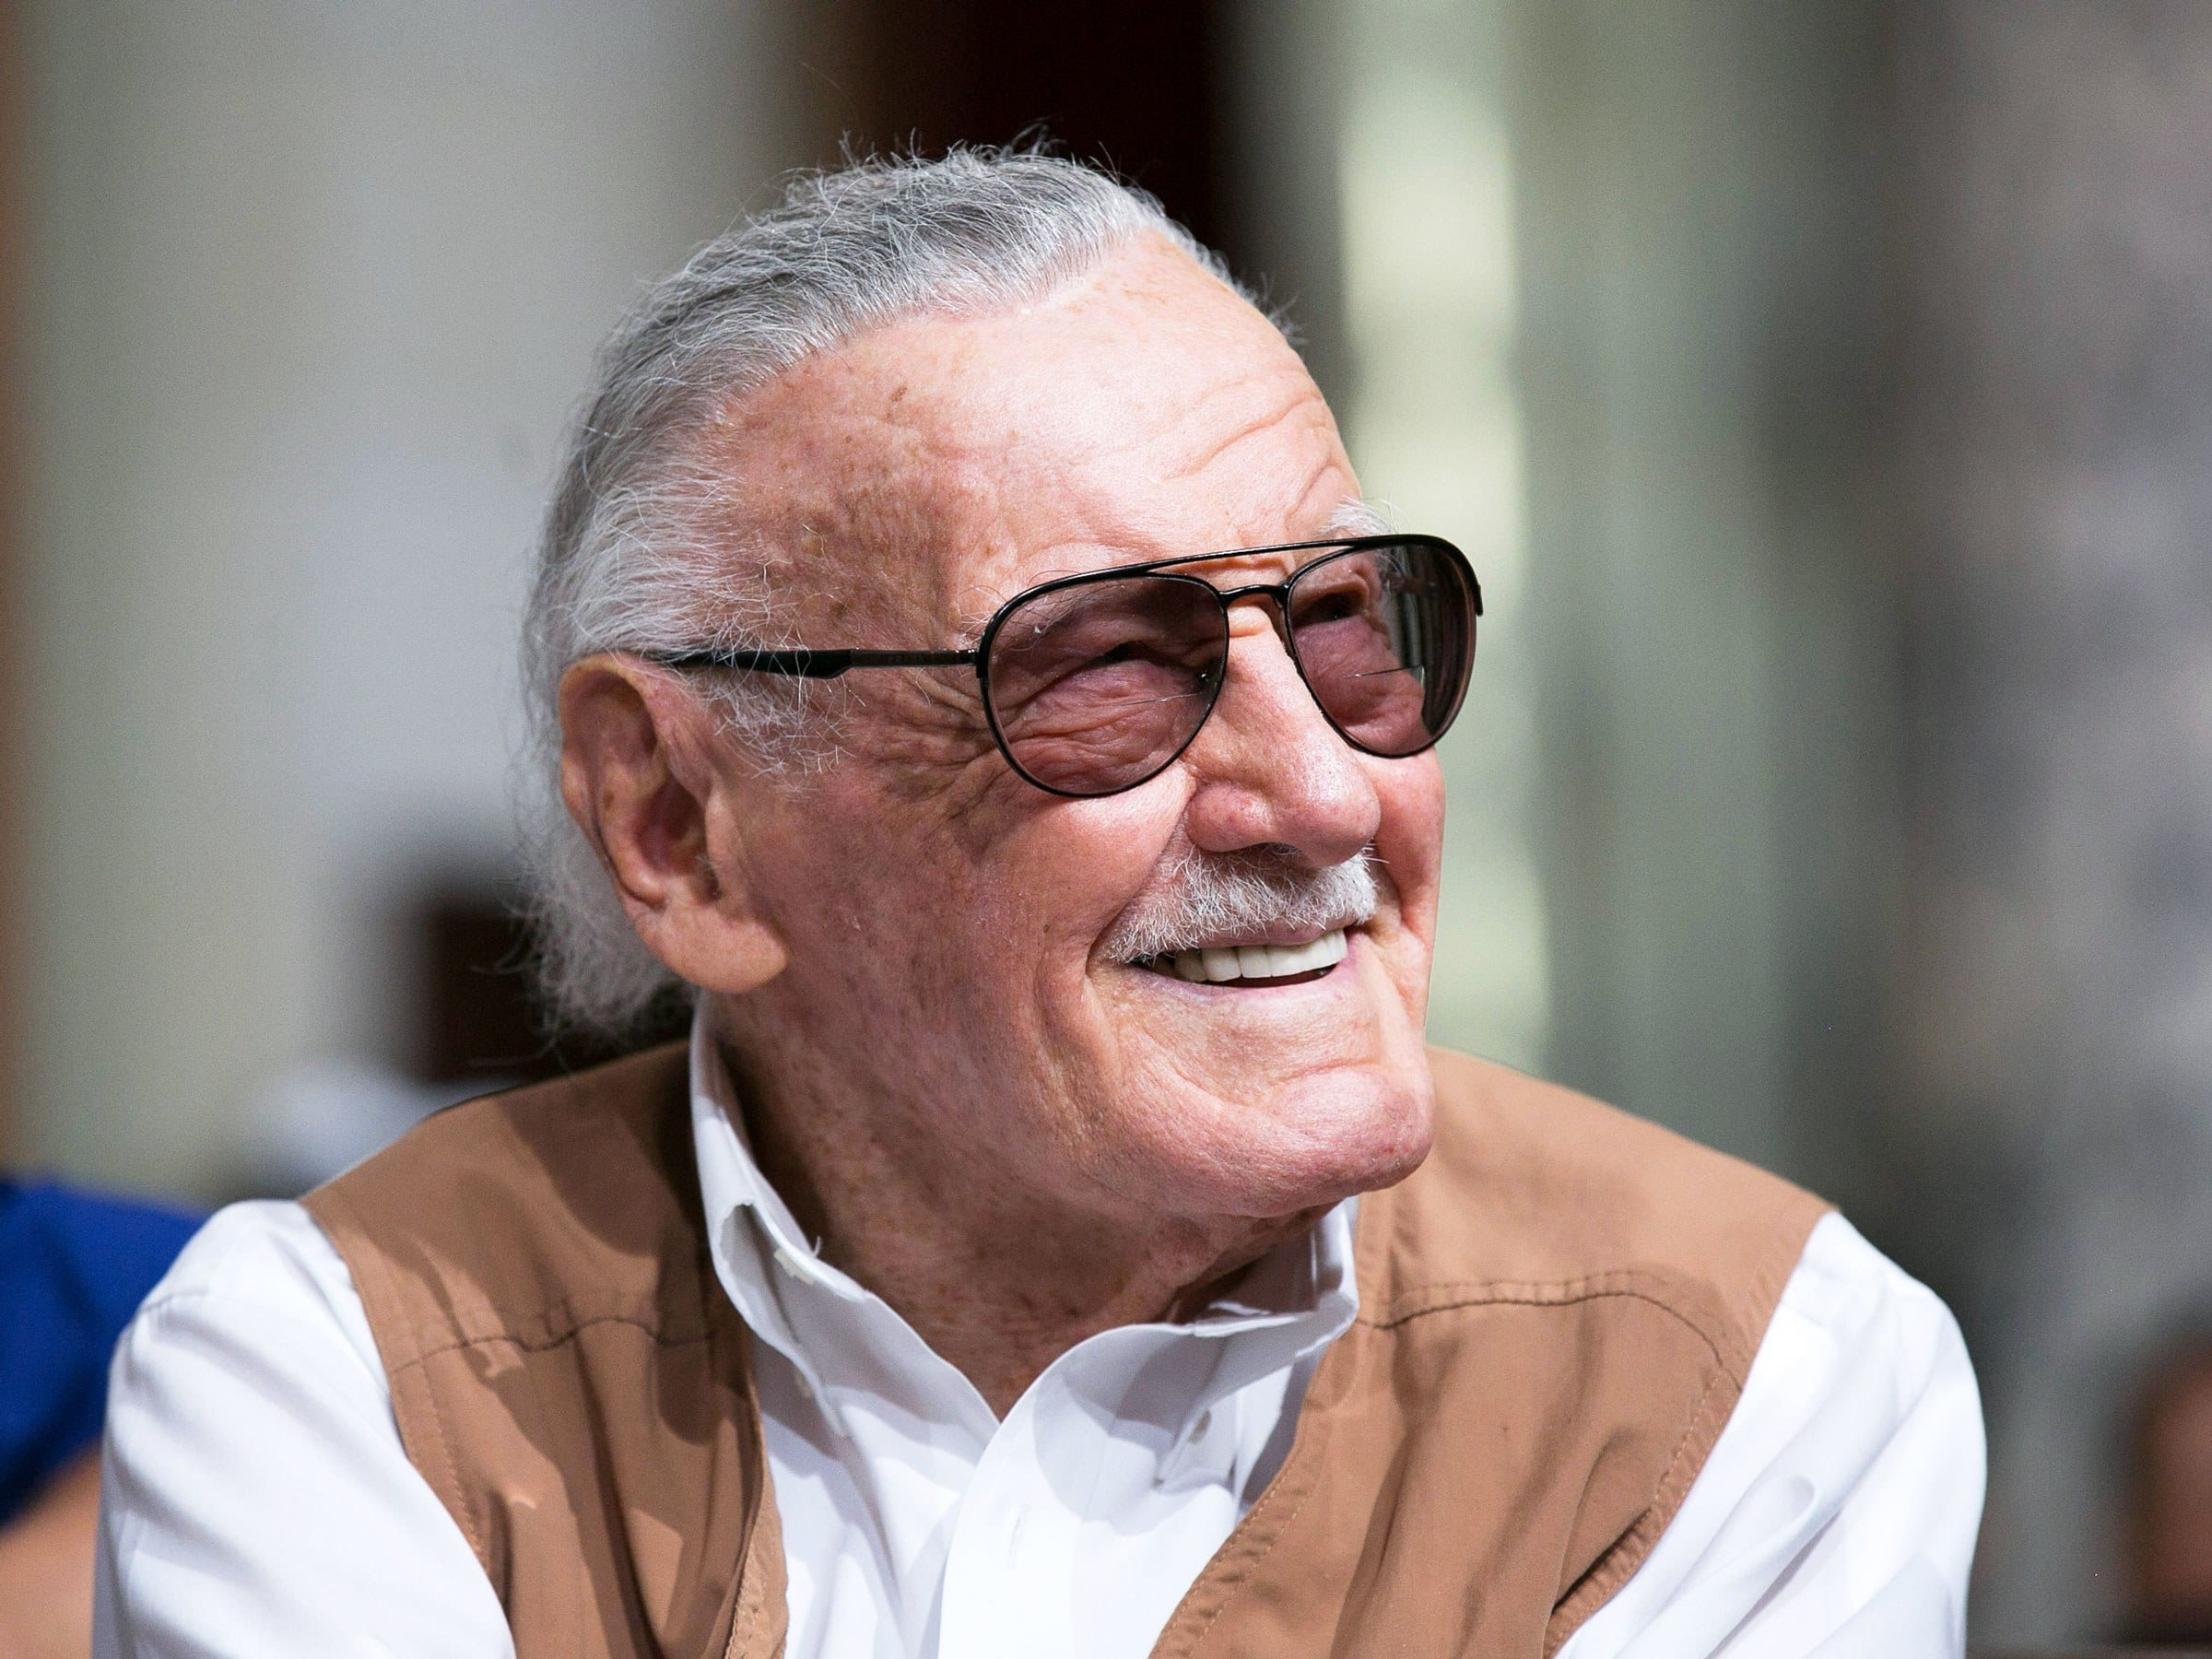 We pay tribute to the great Stan Lee with some of our favourite Stan Lee cameos